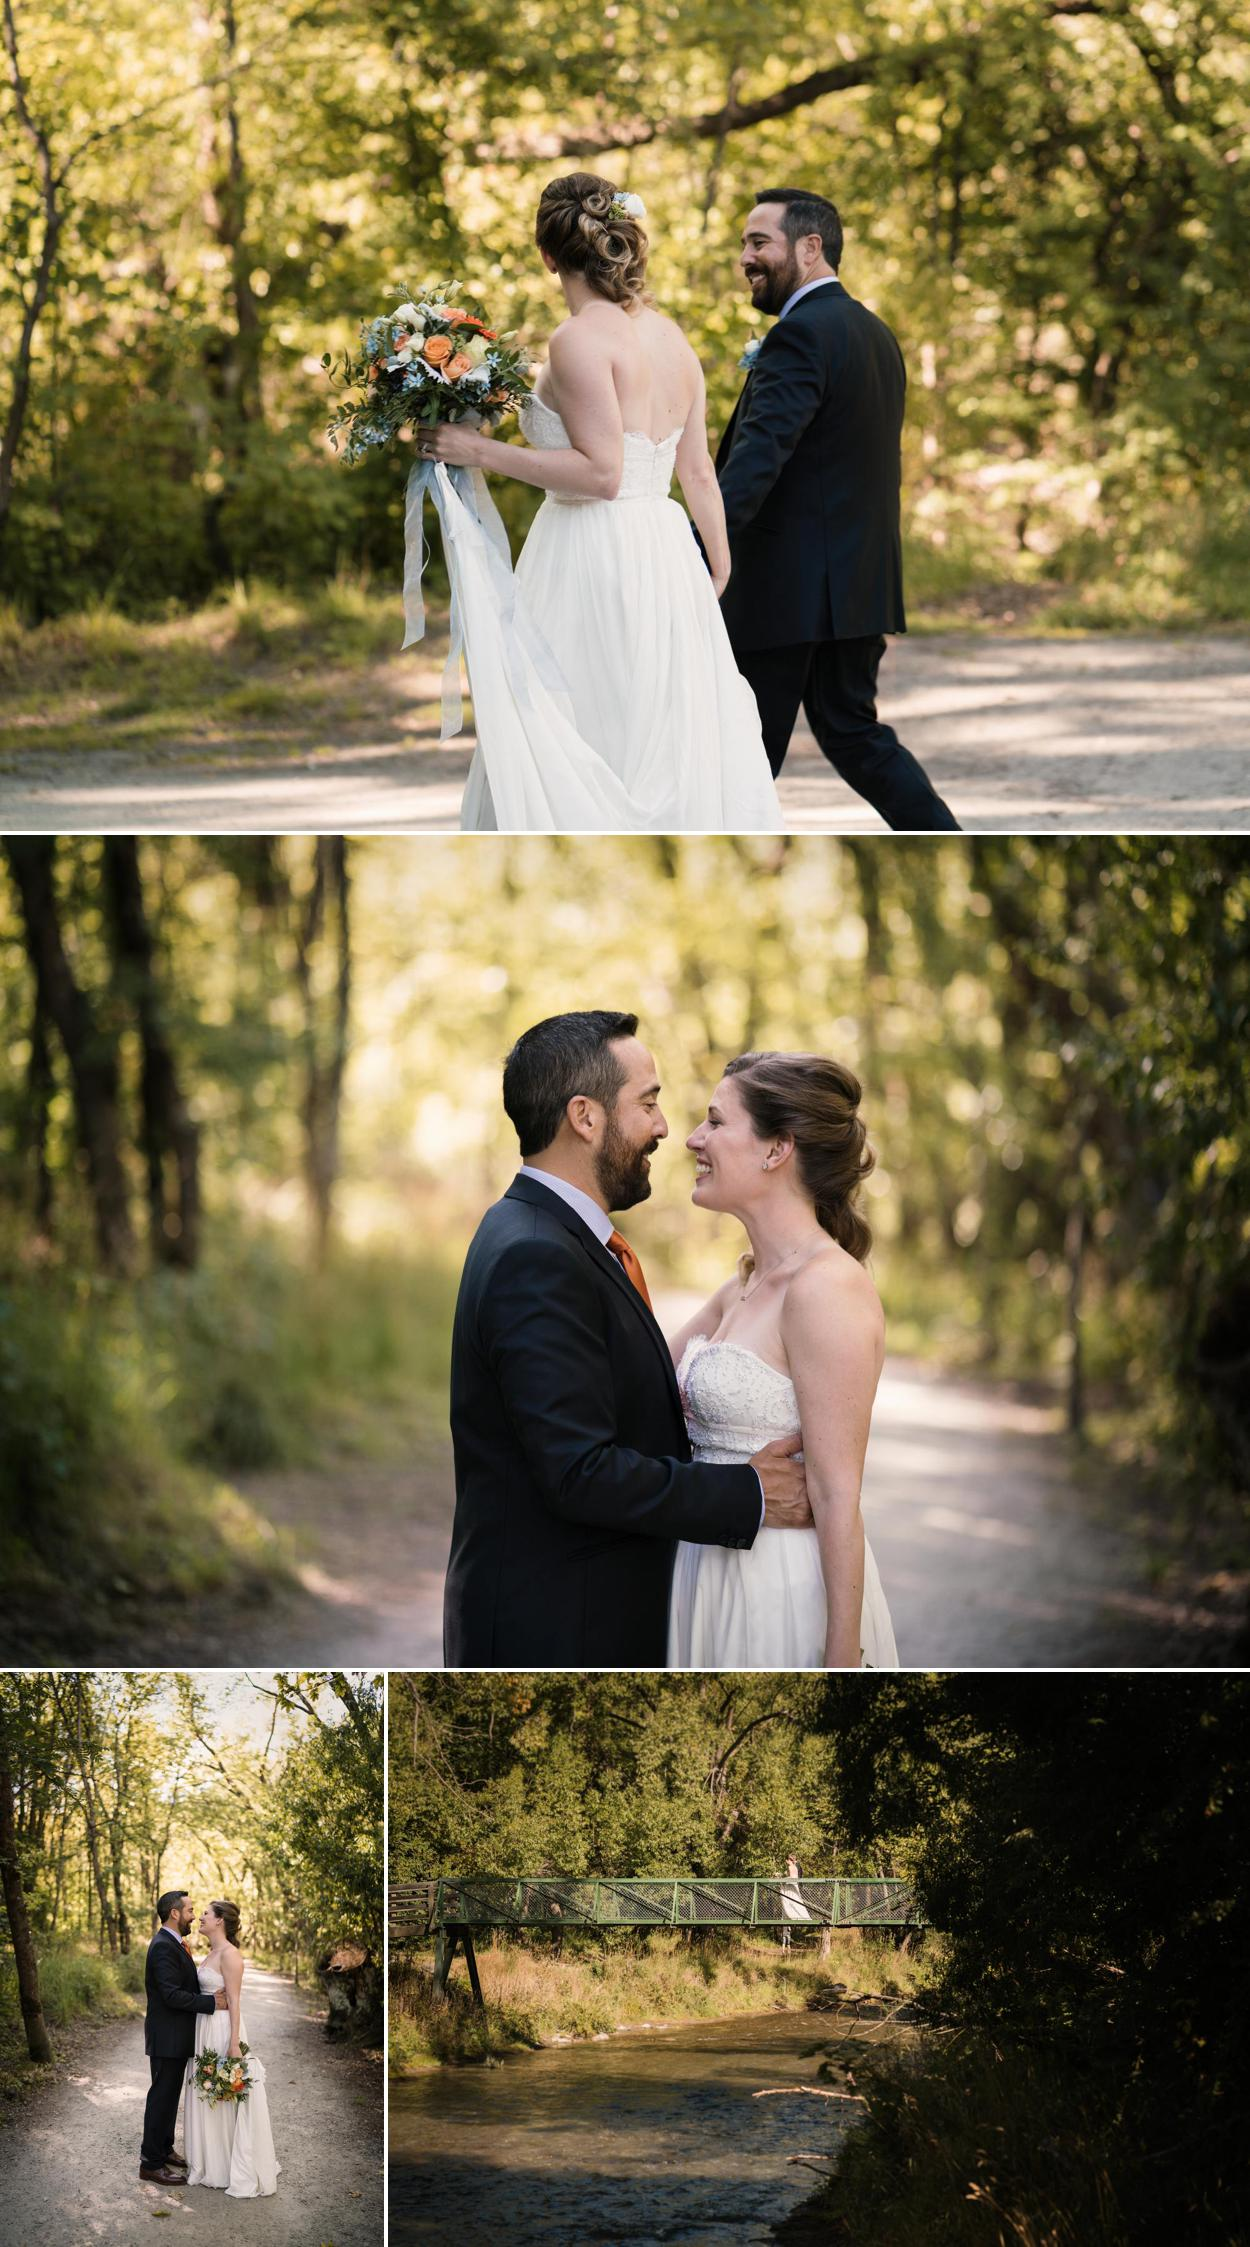 Arrowtown wedding photographer and video